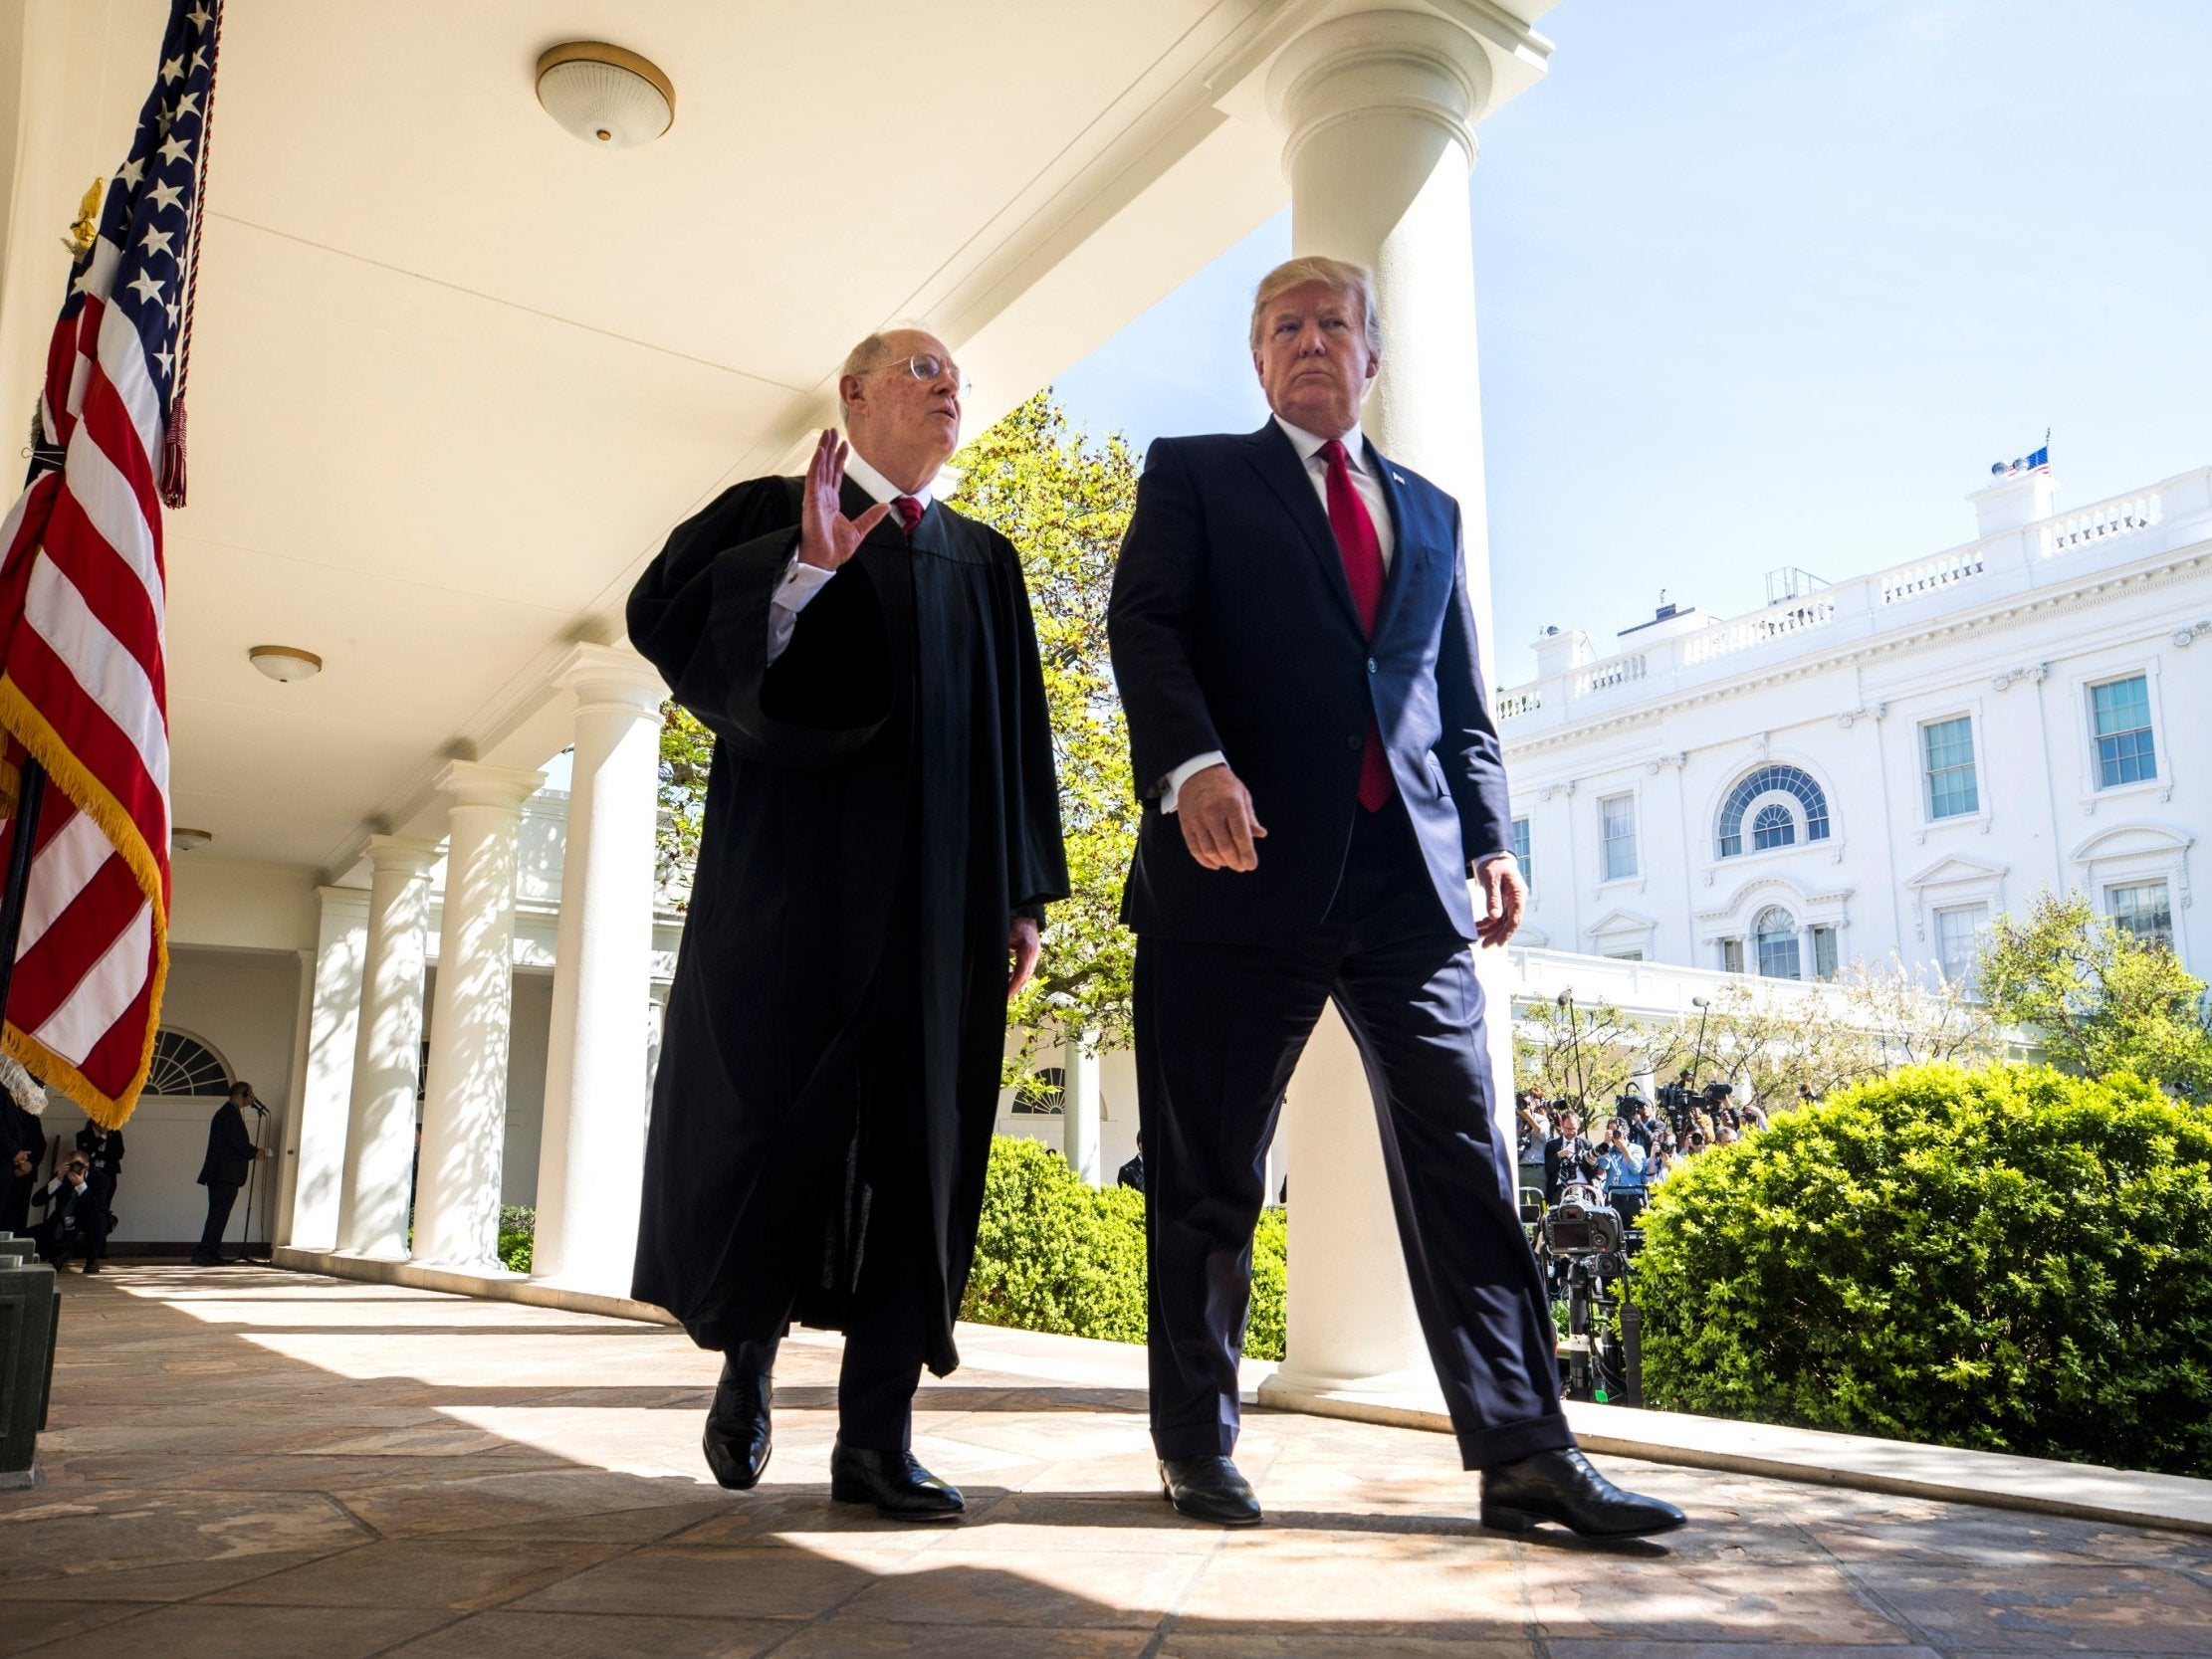 Why the theories about Trump's financial links with the outgoing Supreme Court Justice are riddled with holes